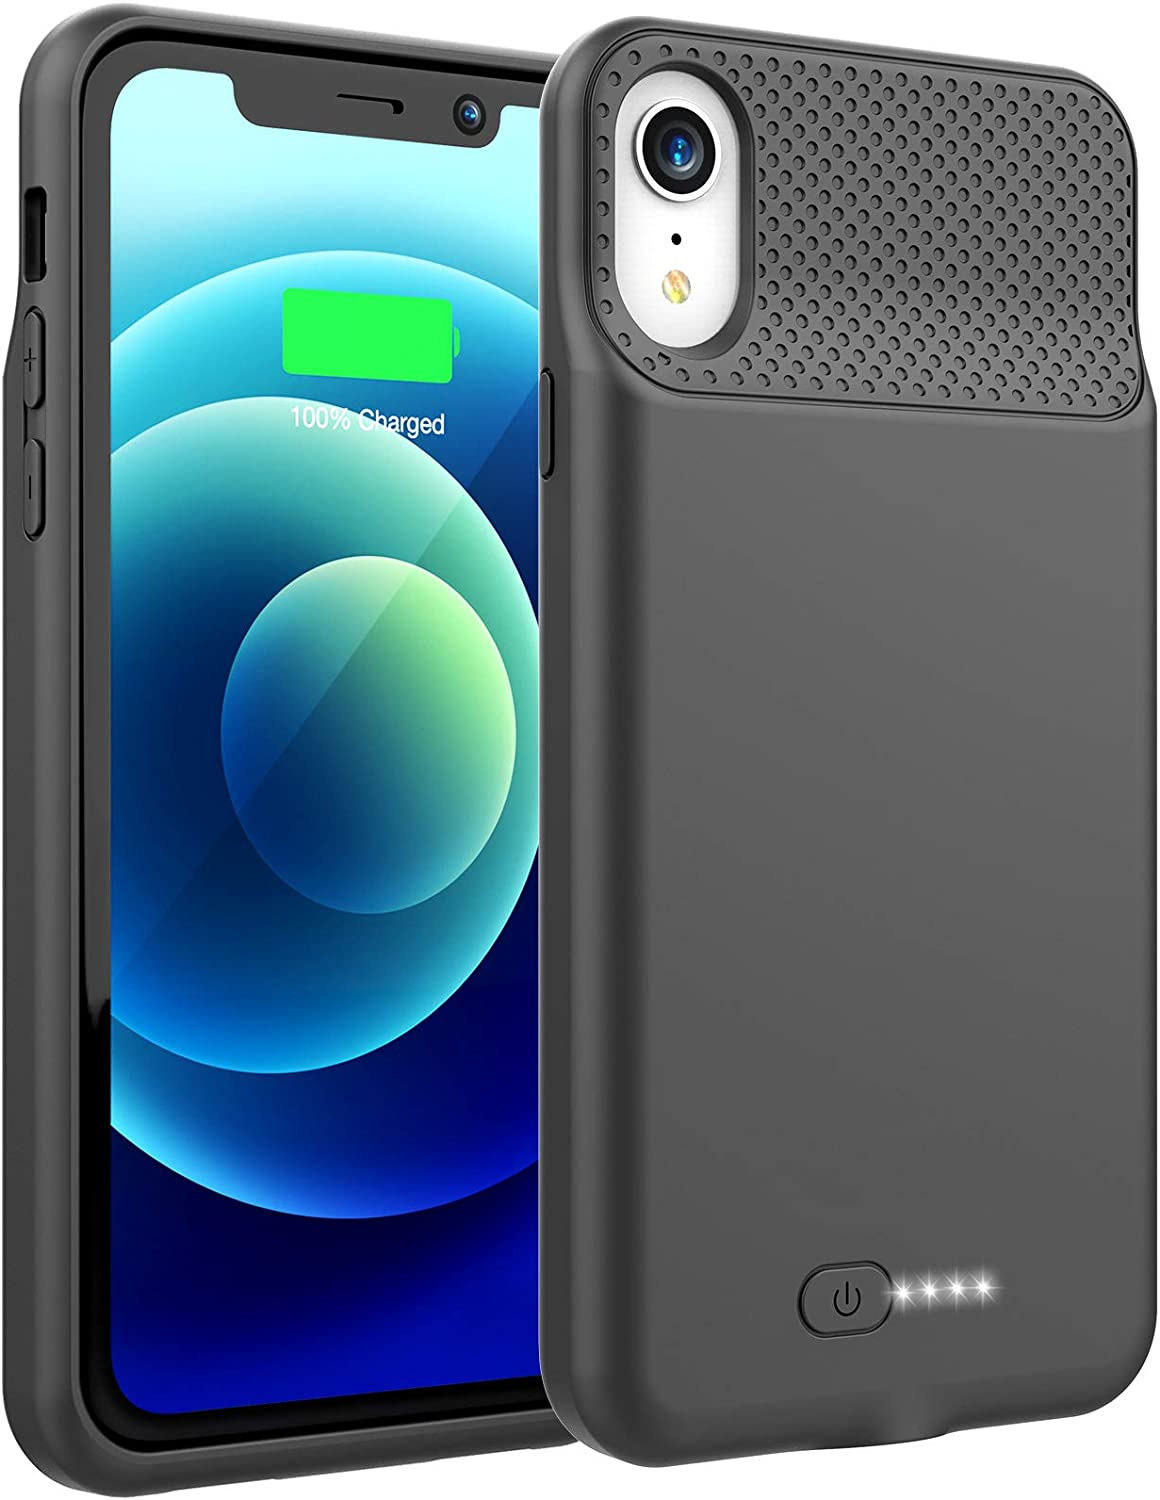 Battery Case for iPhone XR, 6000mAh Portable Charging Case for iPhone XR, Rechargeable Backup External Battery Pack Extended Battery Protective Charger Case, (6.1inch)